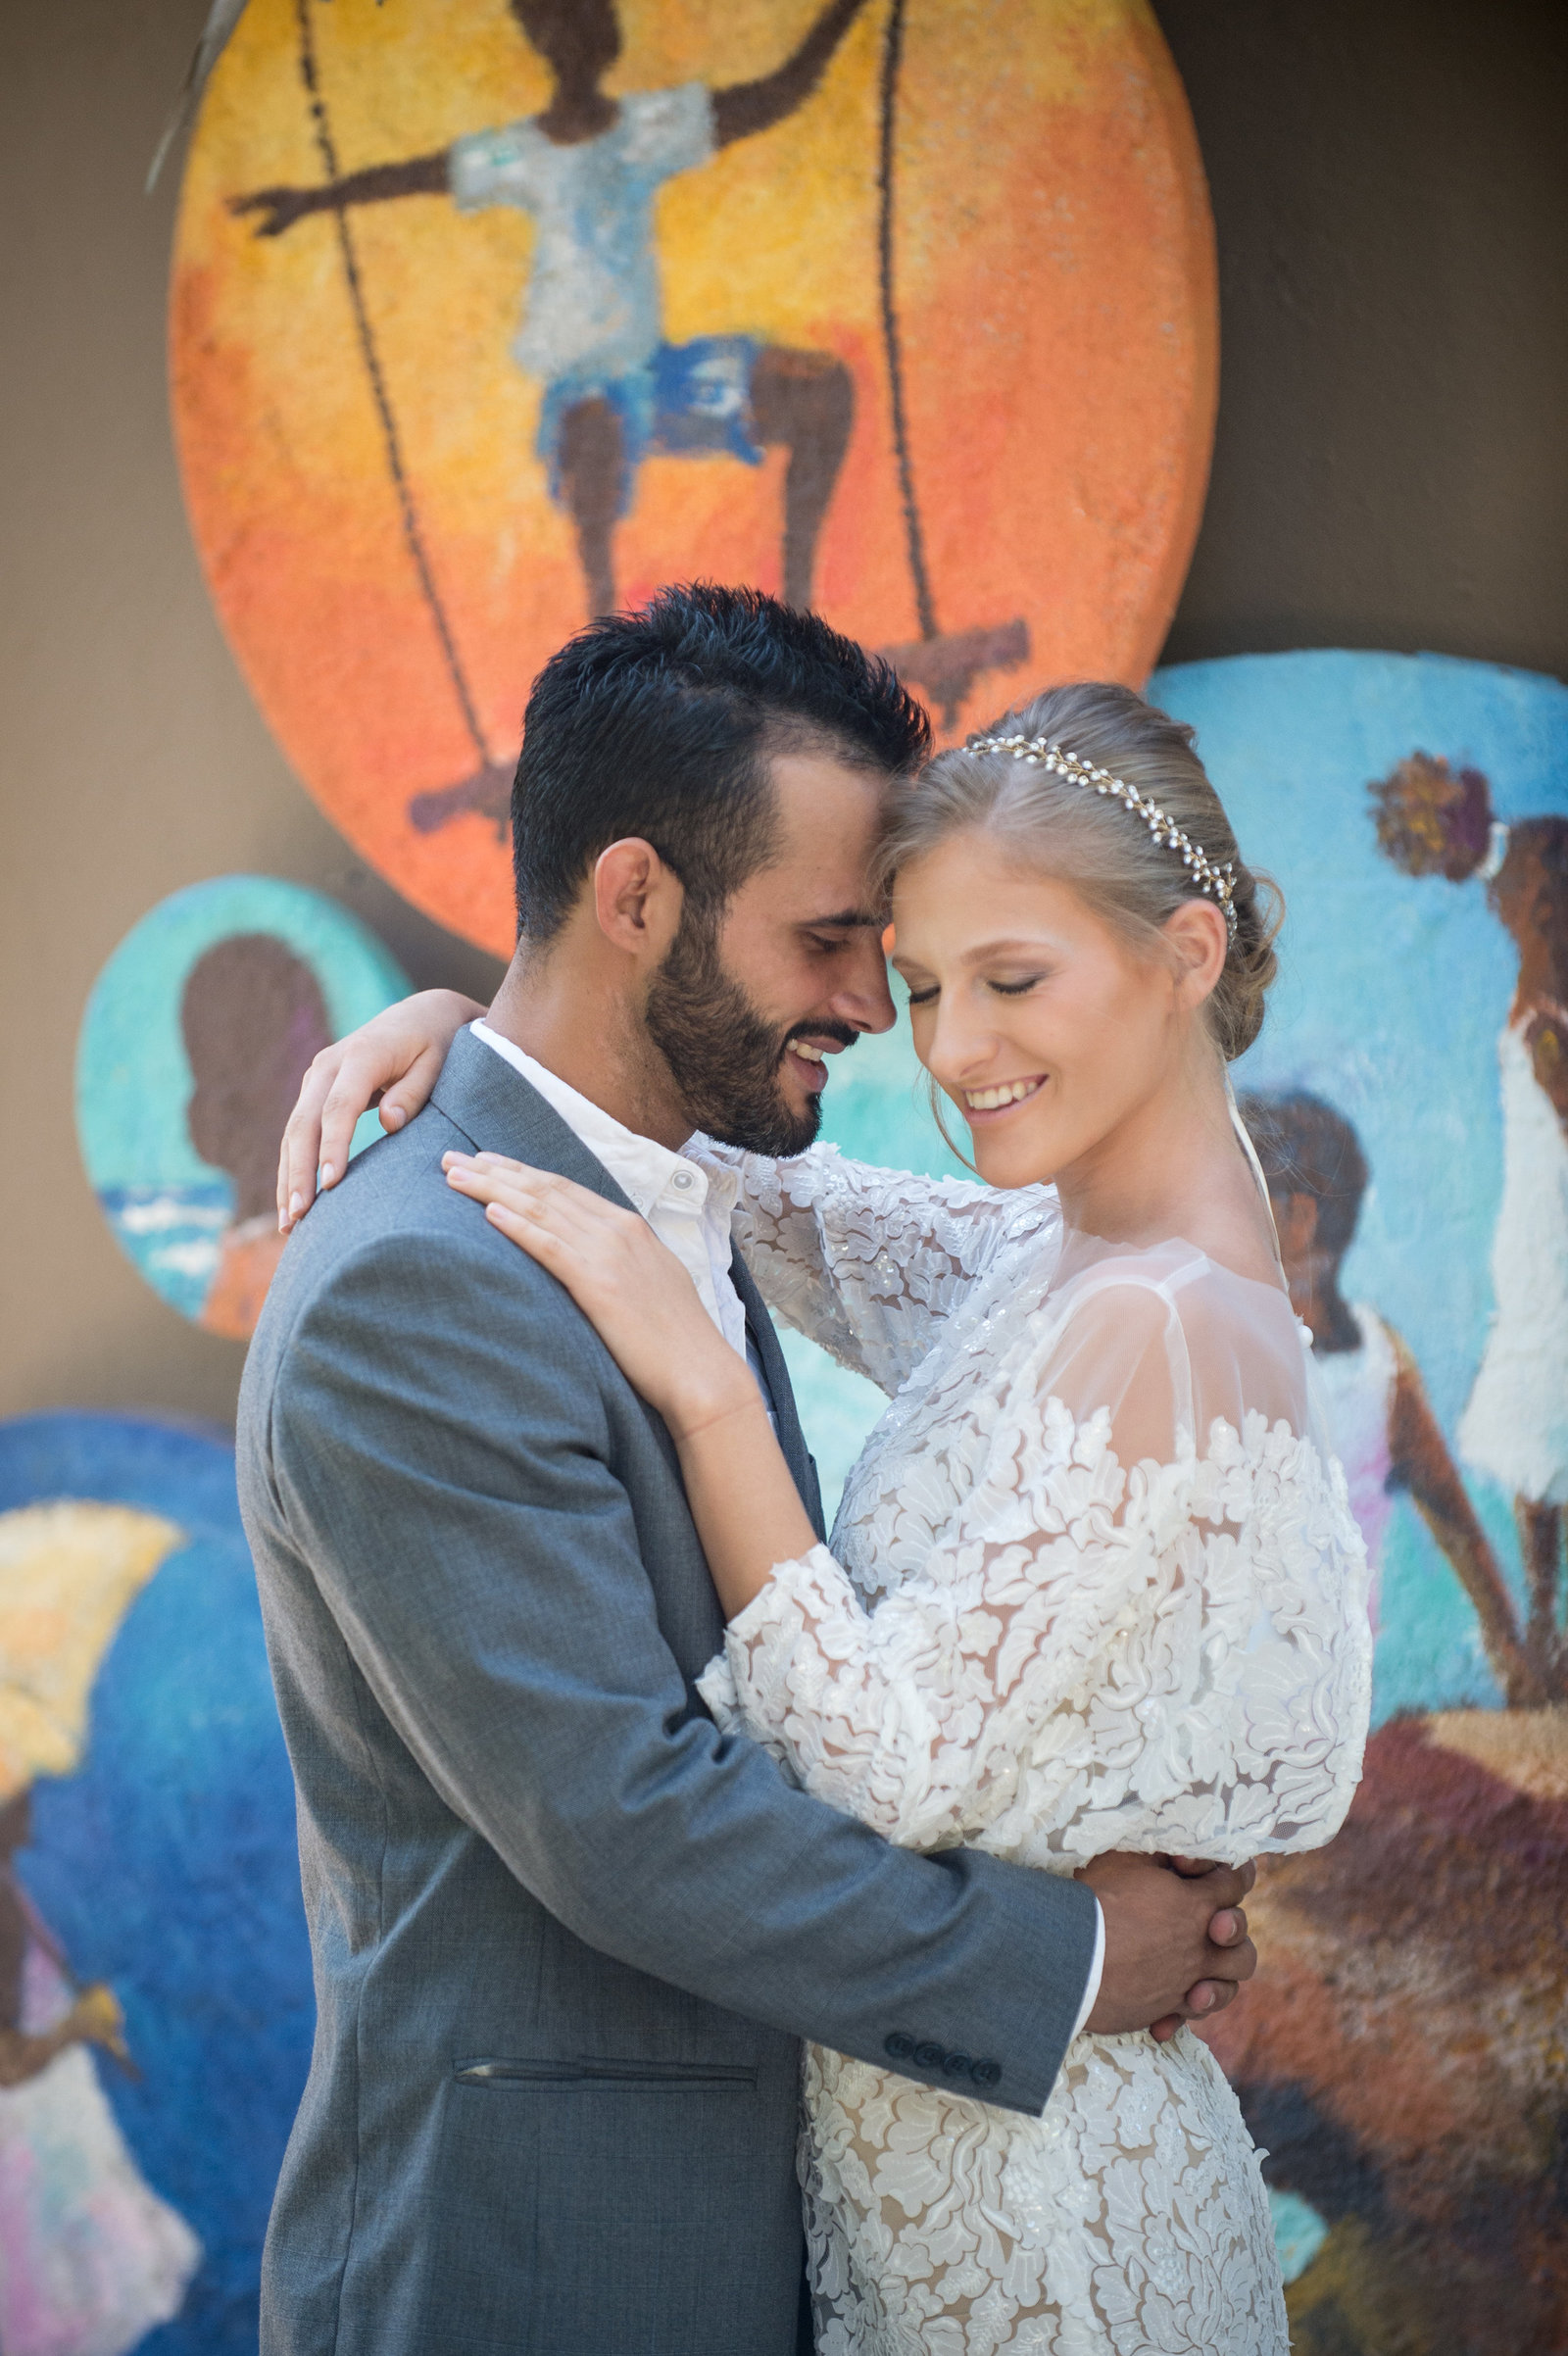 02-Destination Wedding Photography - Costa Rica Wedding Photographers - 03